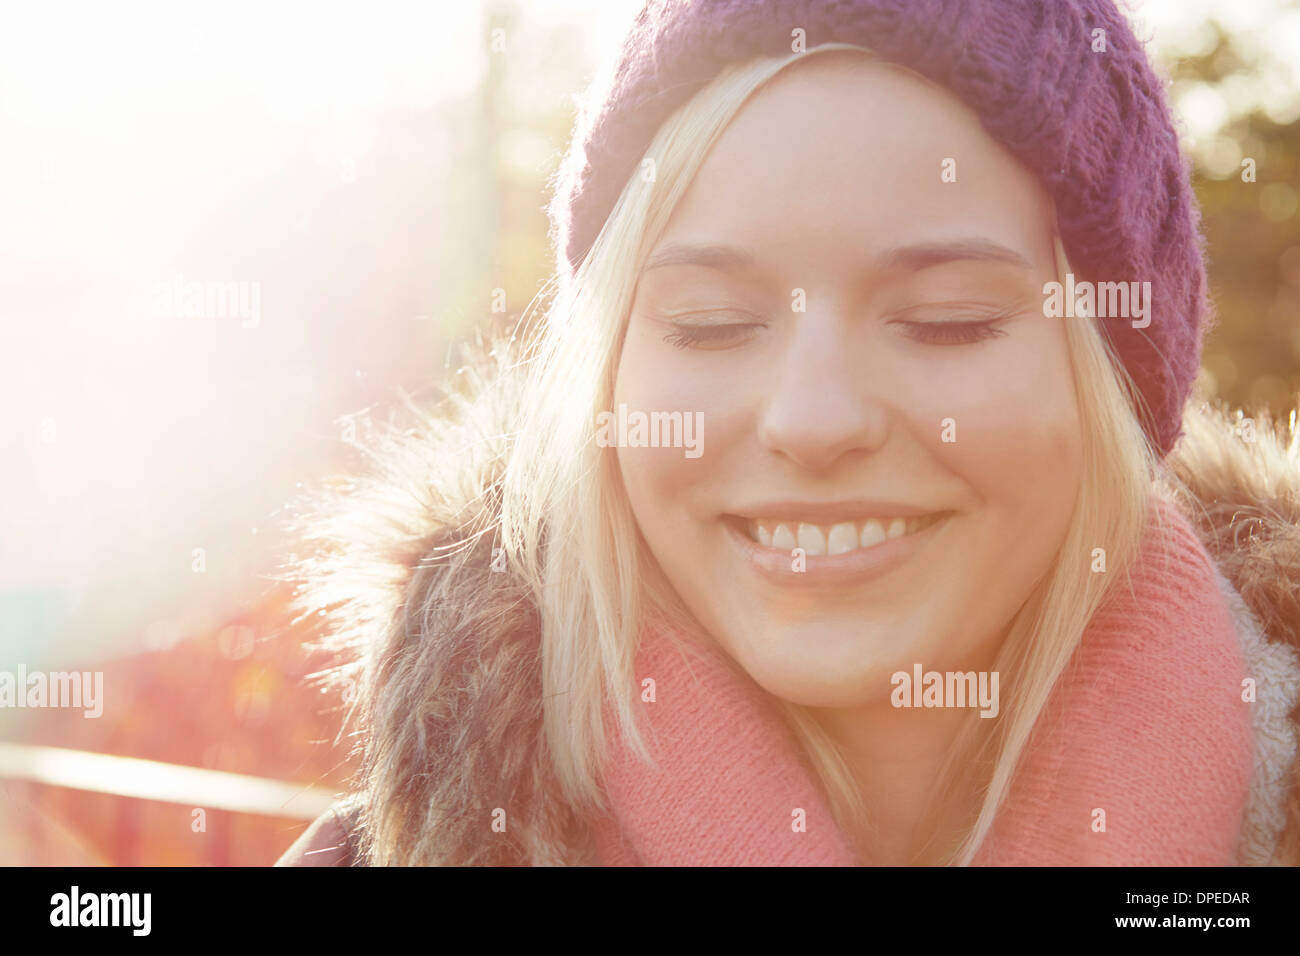 Portrait of young woman wearing knit hat, eyes closed - Stock Image